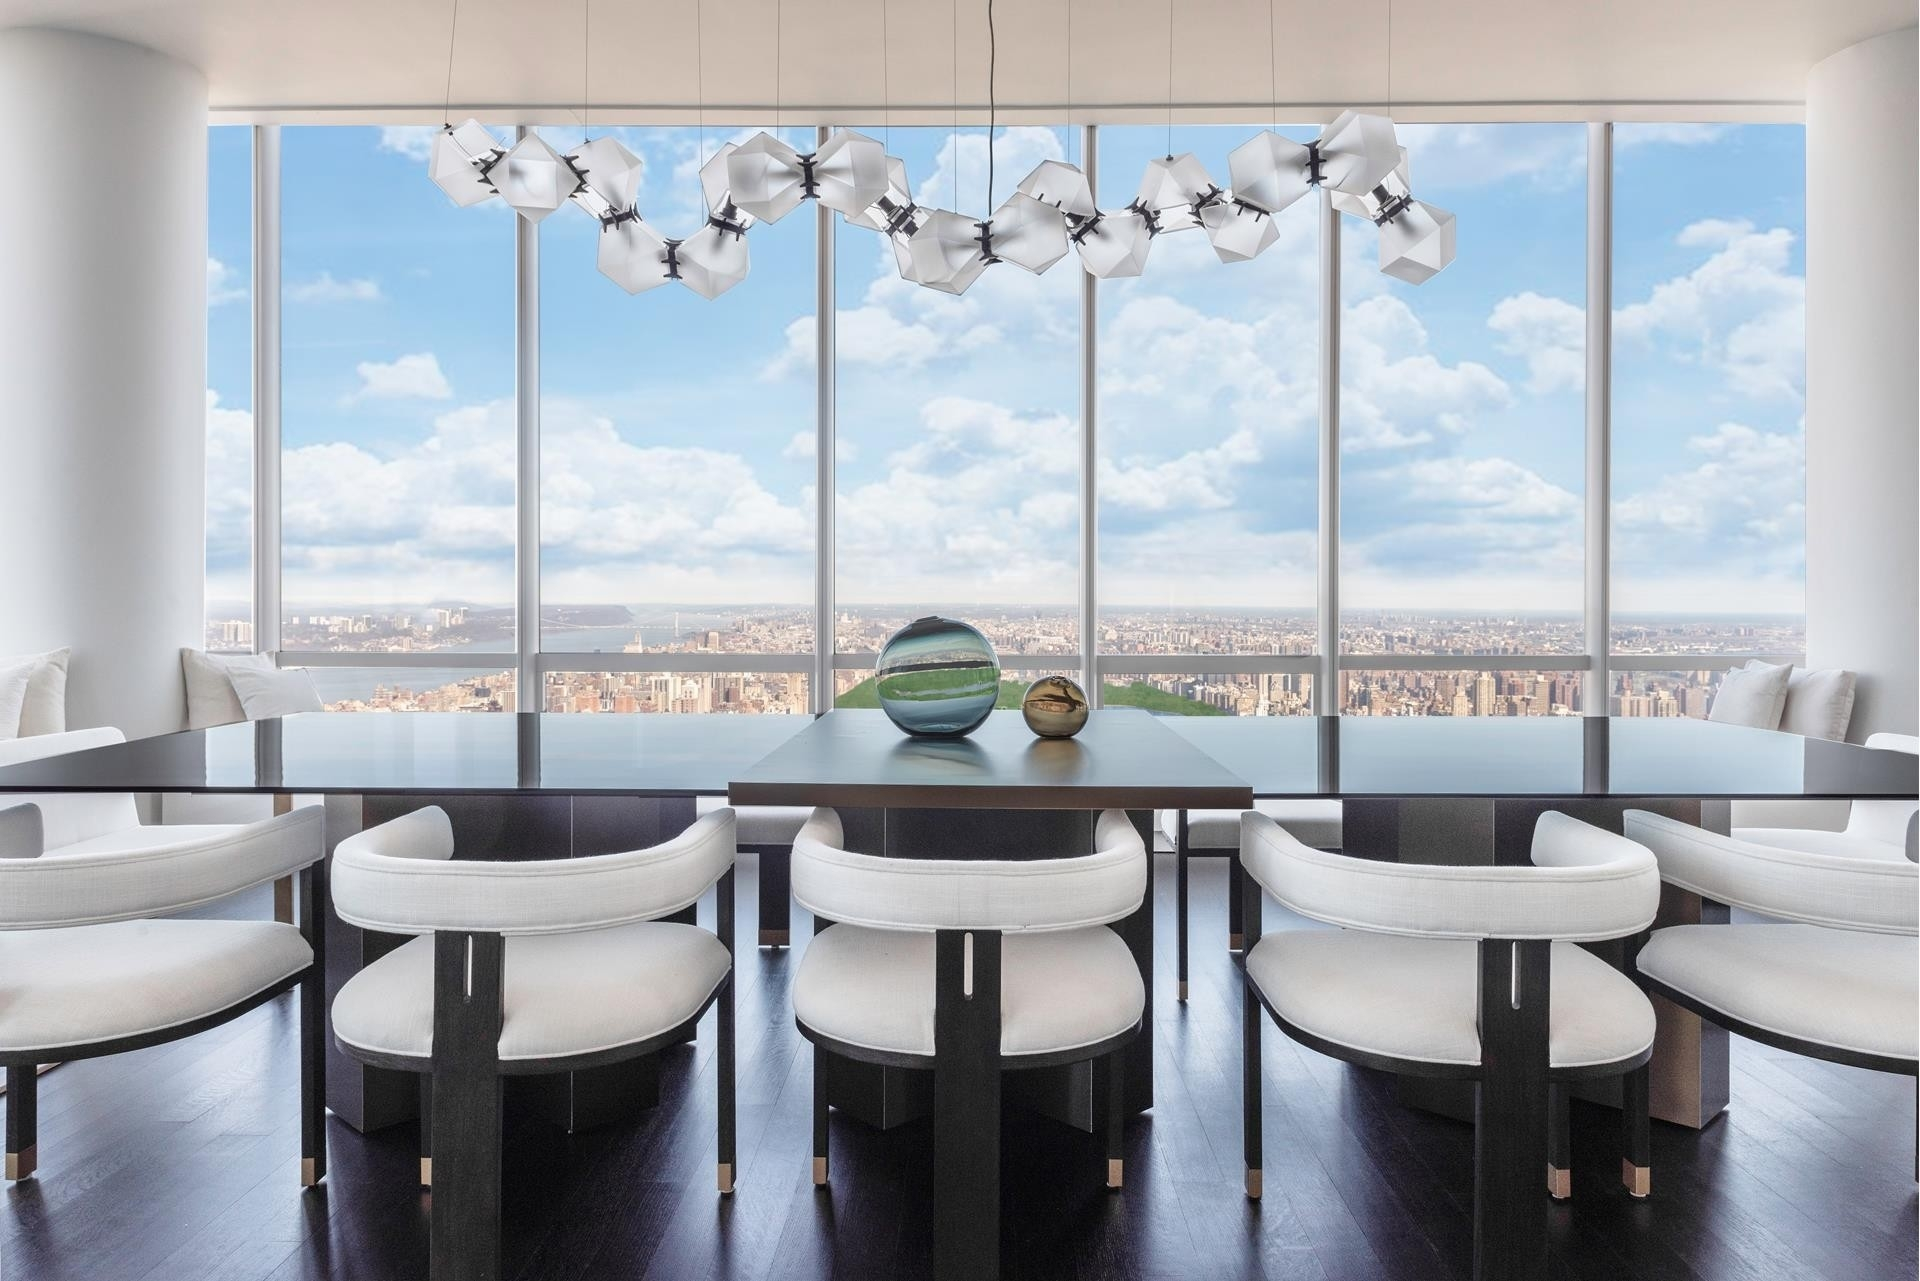 5. Condominiums for Sale at One57, 157 West 57th St, 87 Midtown West, New York, NY 10019